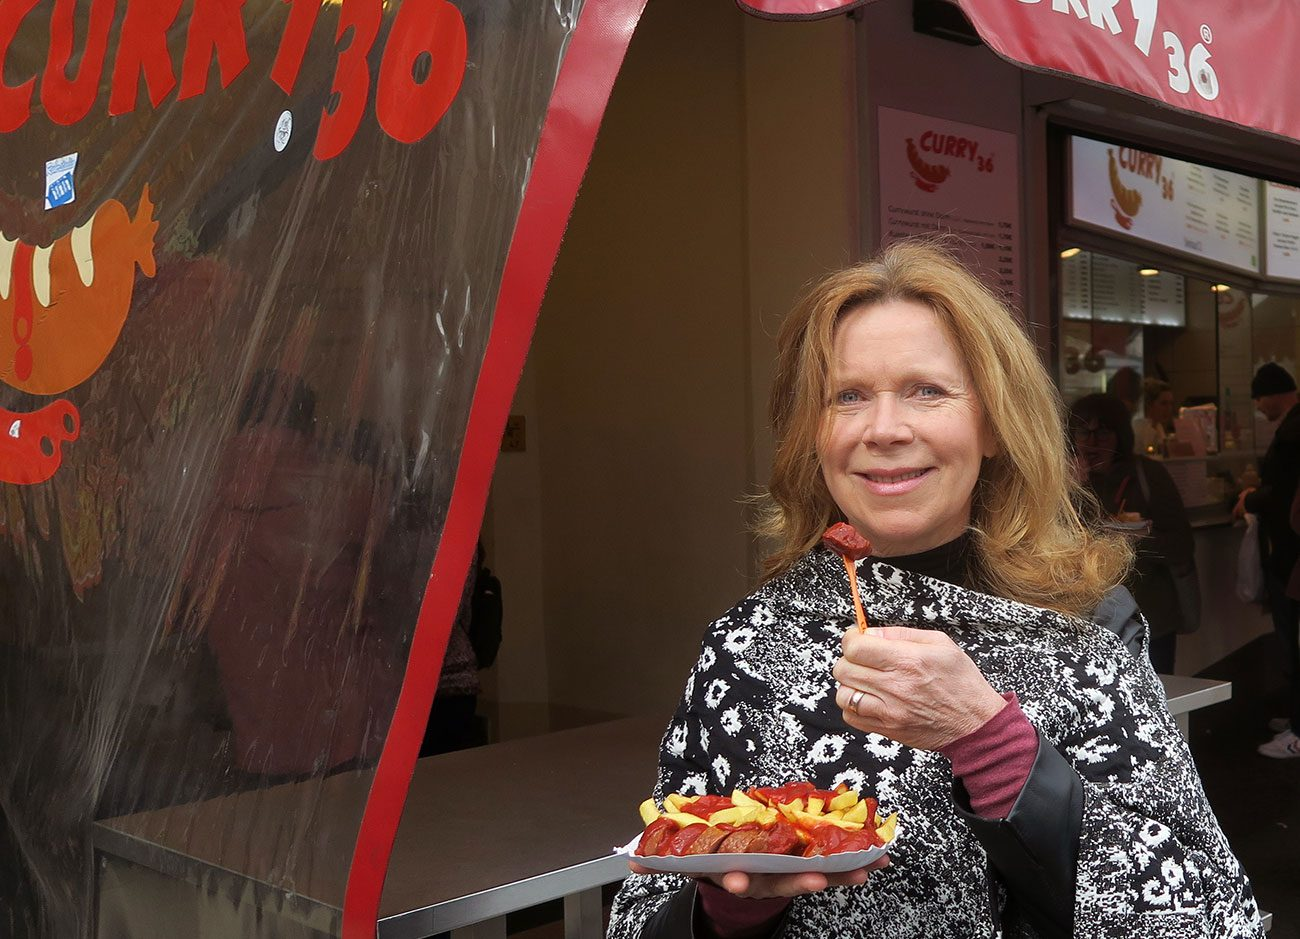 Marion Kracht, Curry36, Currywurst